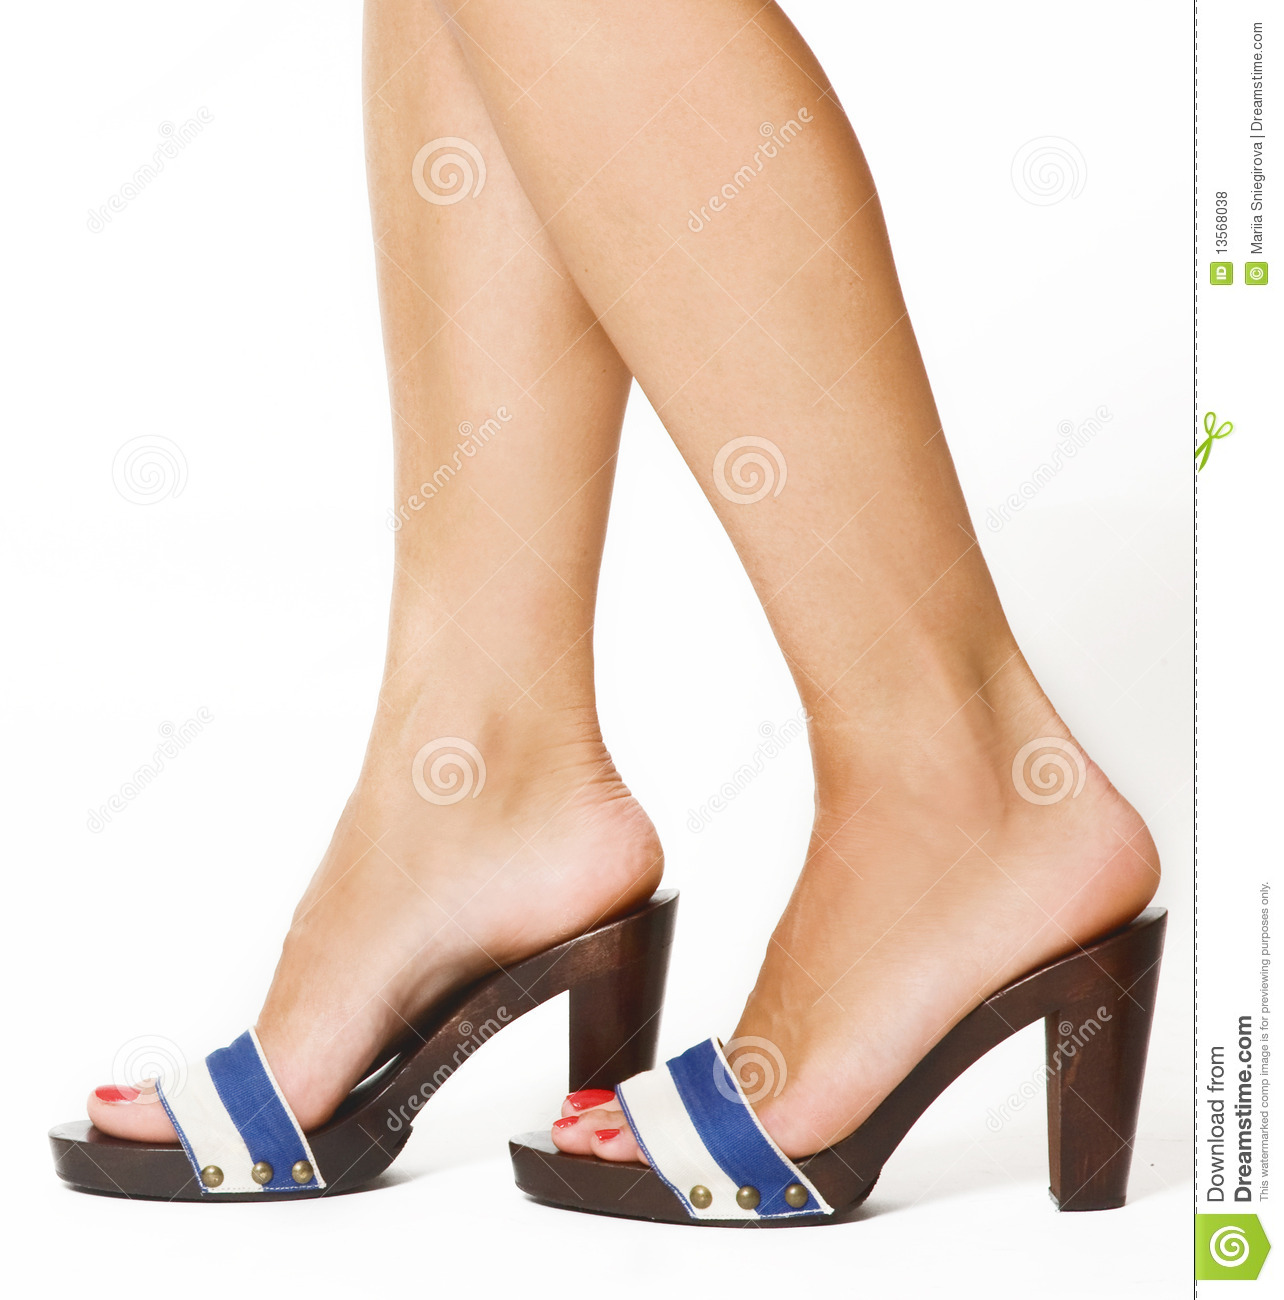 Woman's Feet Royalty Free Stock Photos - Image: 13568038